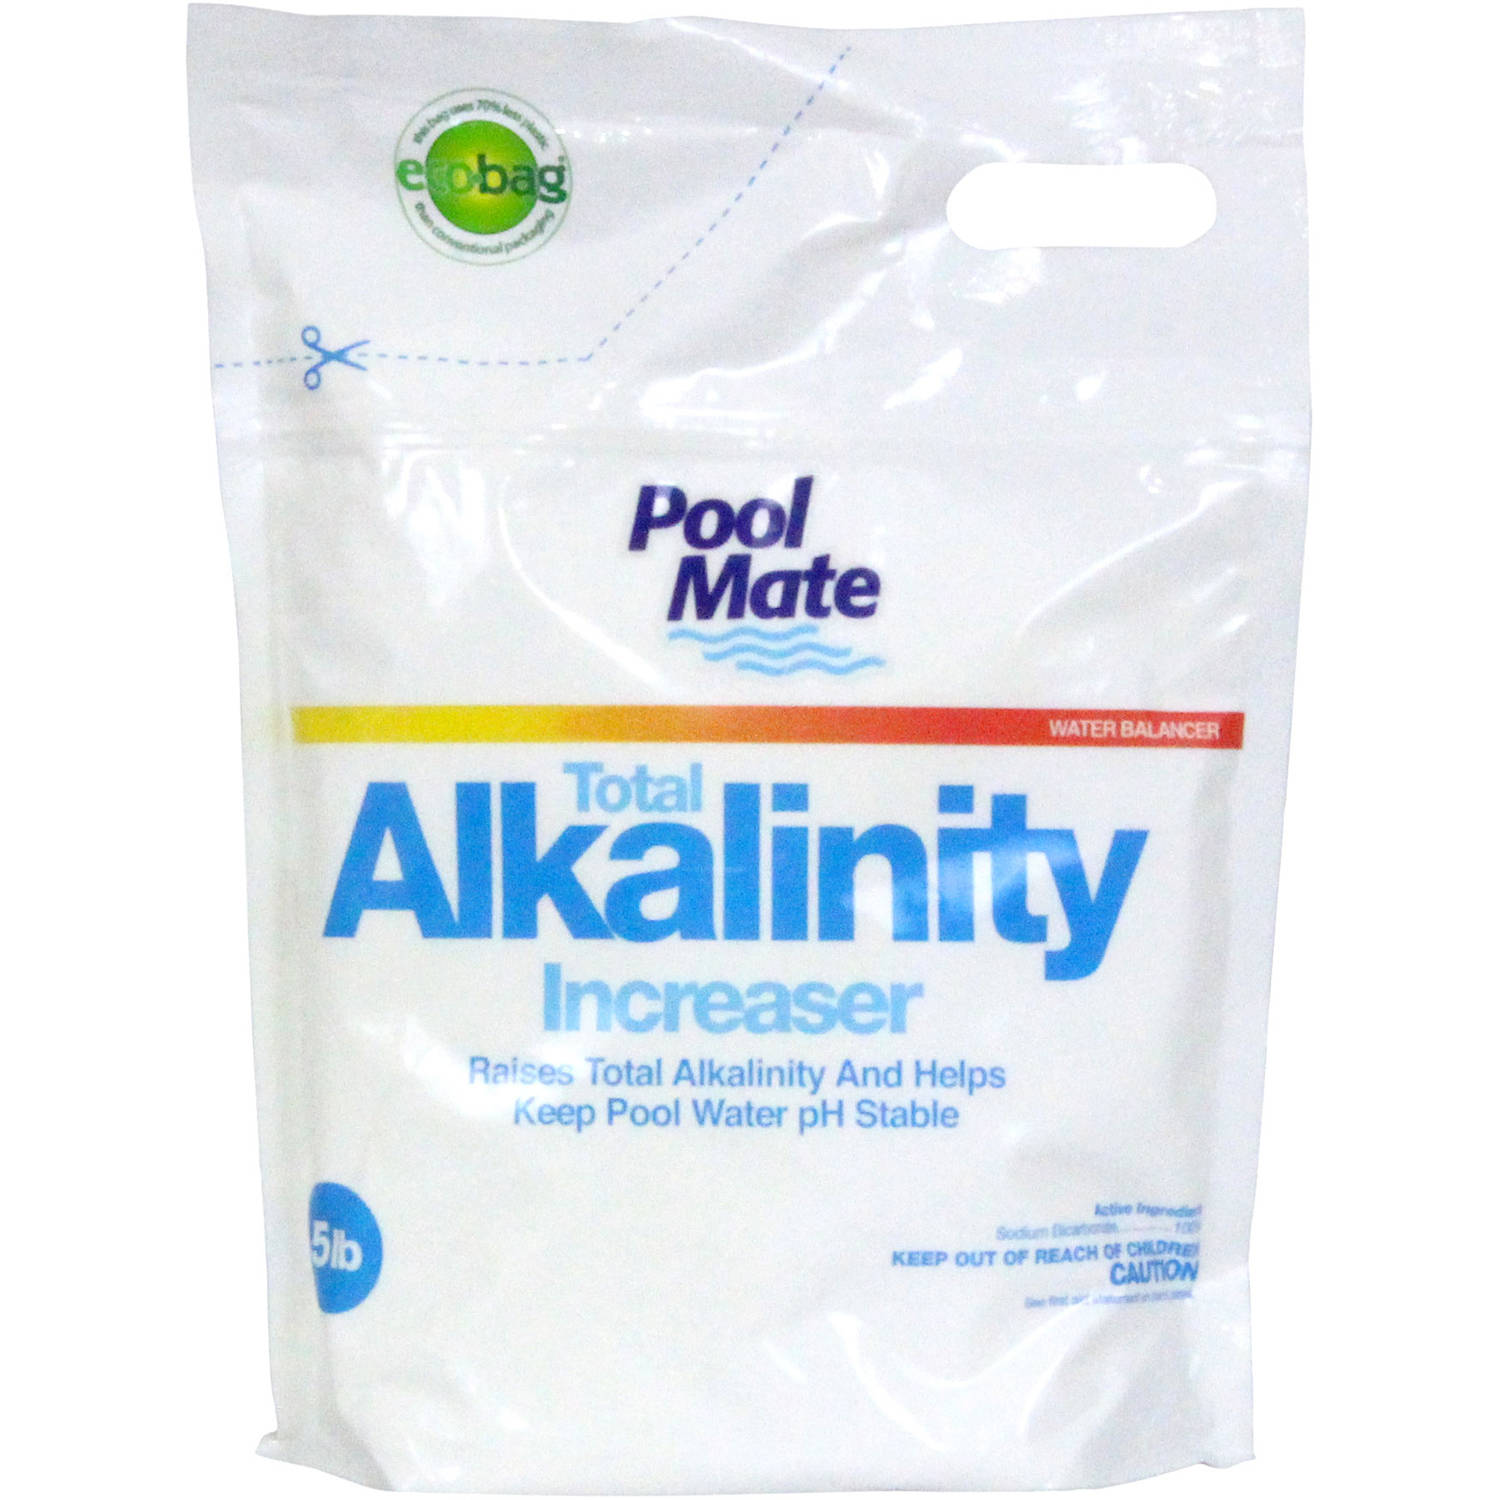 Pool Mate Total Alkalinity Increaser for Swimming Pools